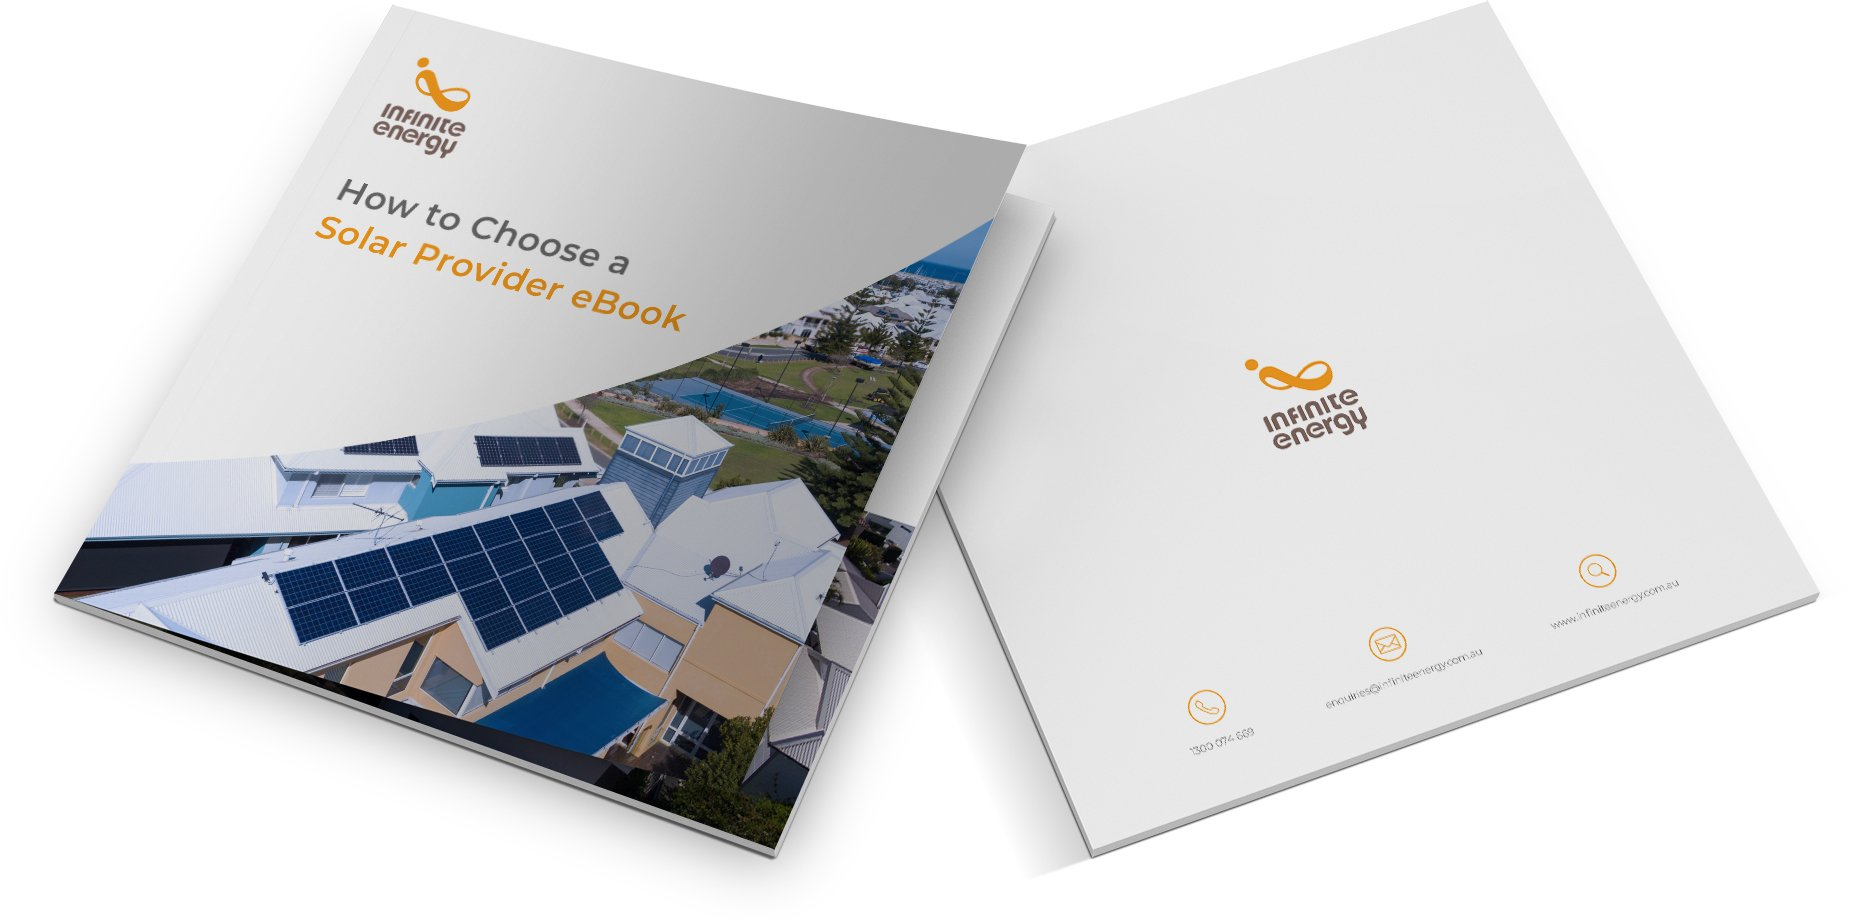 solar-ebook-guide